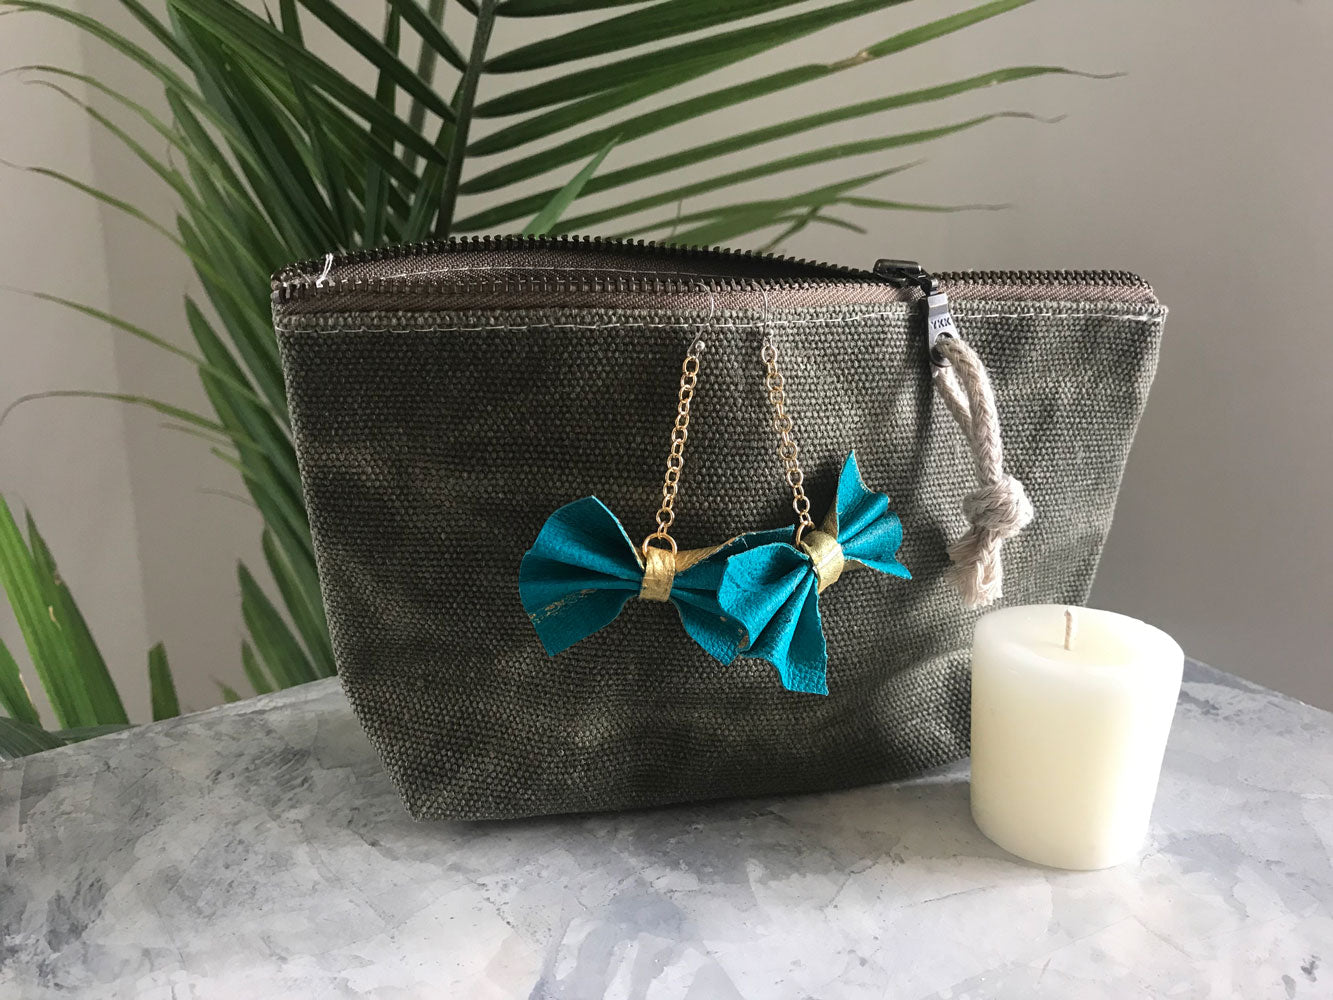 sage green zipper pouch with green leather bow on gold chain earrings with beeswax votive candle on marble surface with fern plan in the background